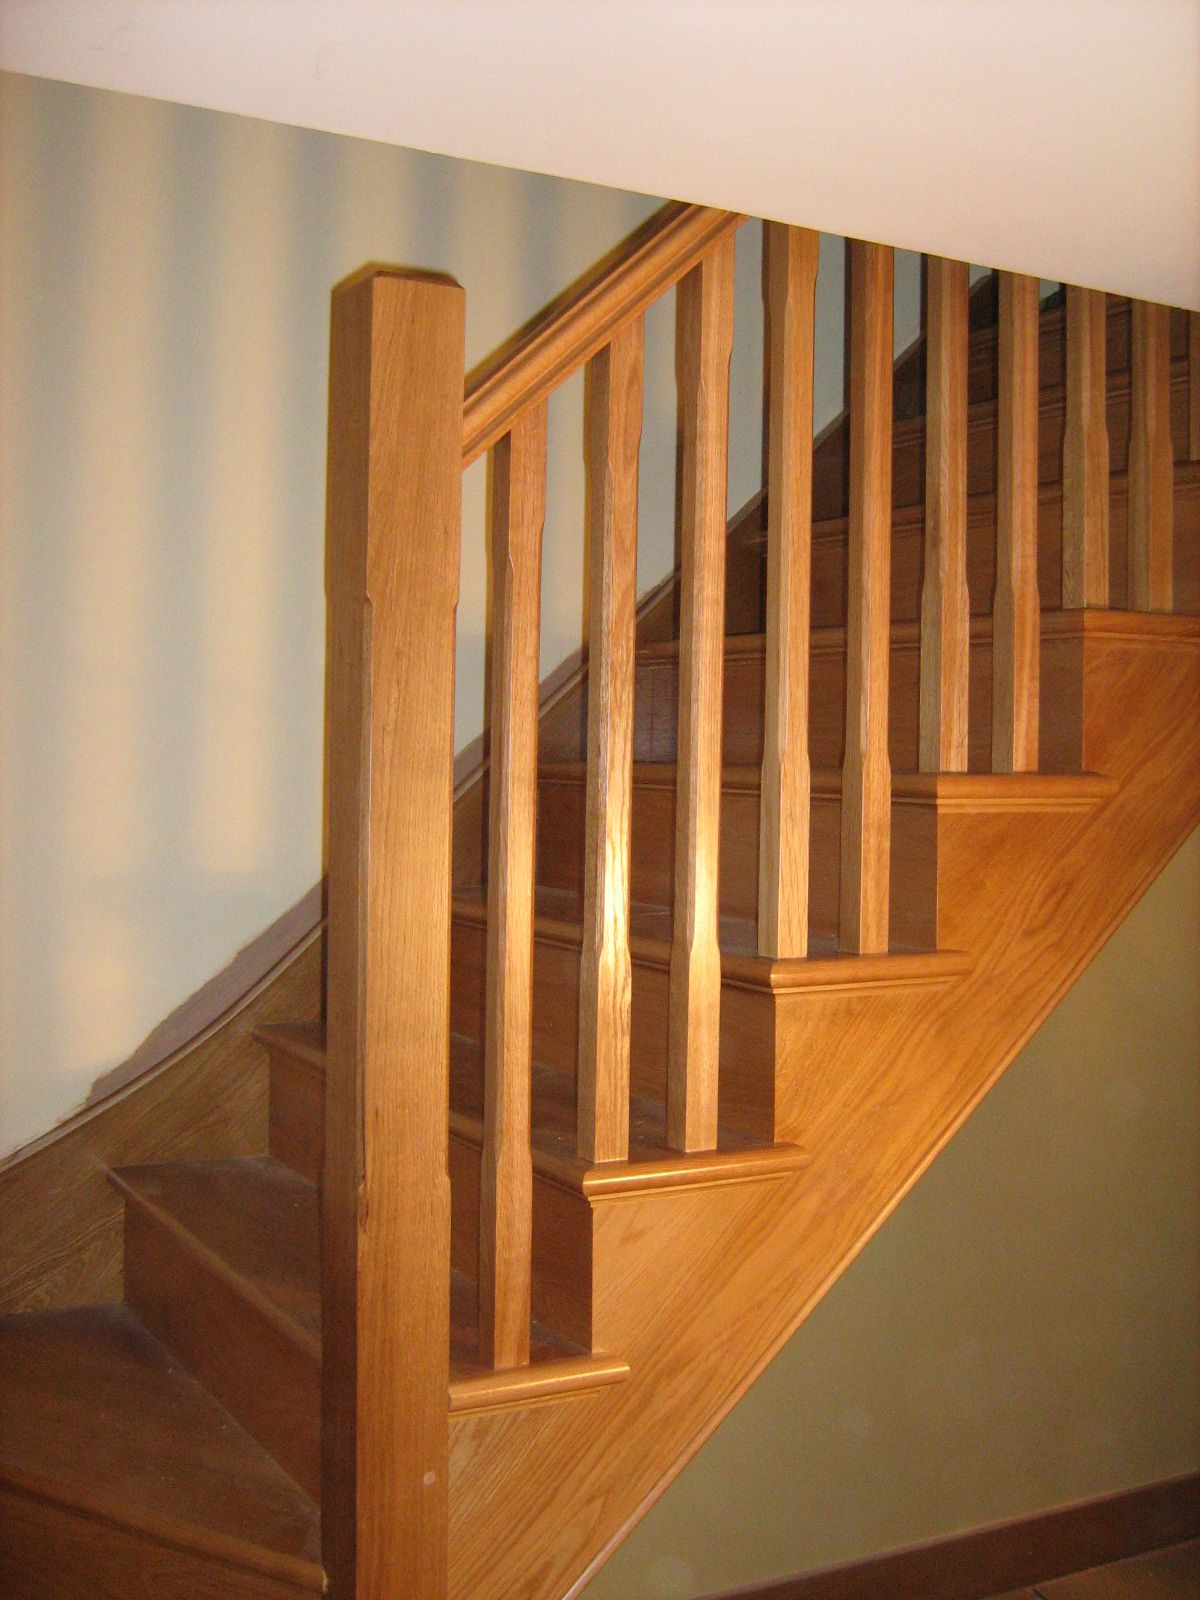 Wooden Staircase Pictures Pin By Merrin Joinery On Traditional Wooden Stairs Pinterest